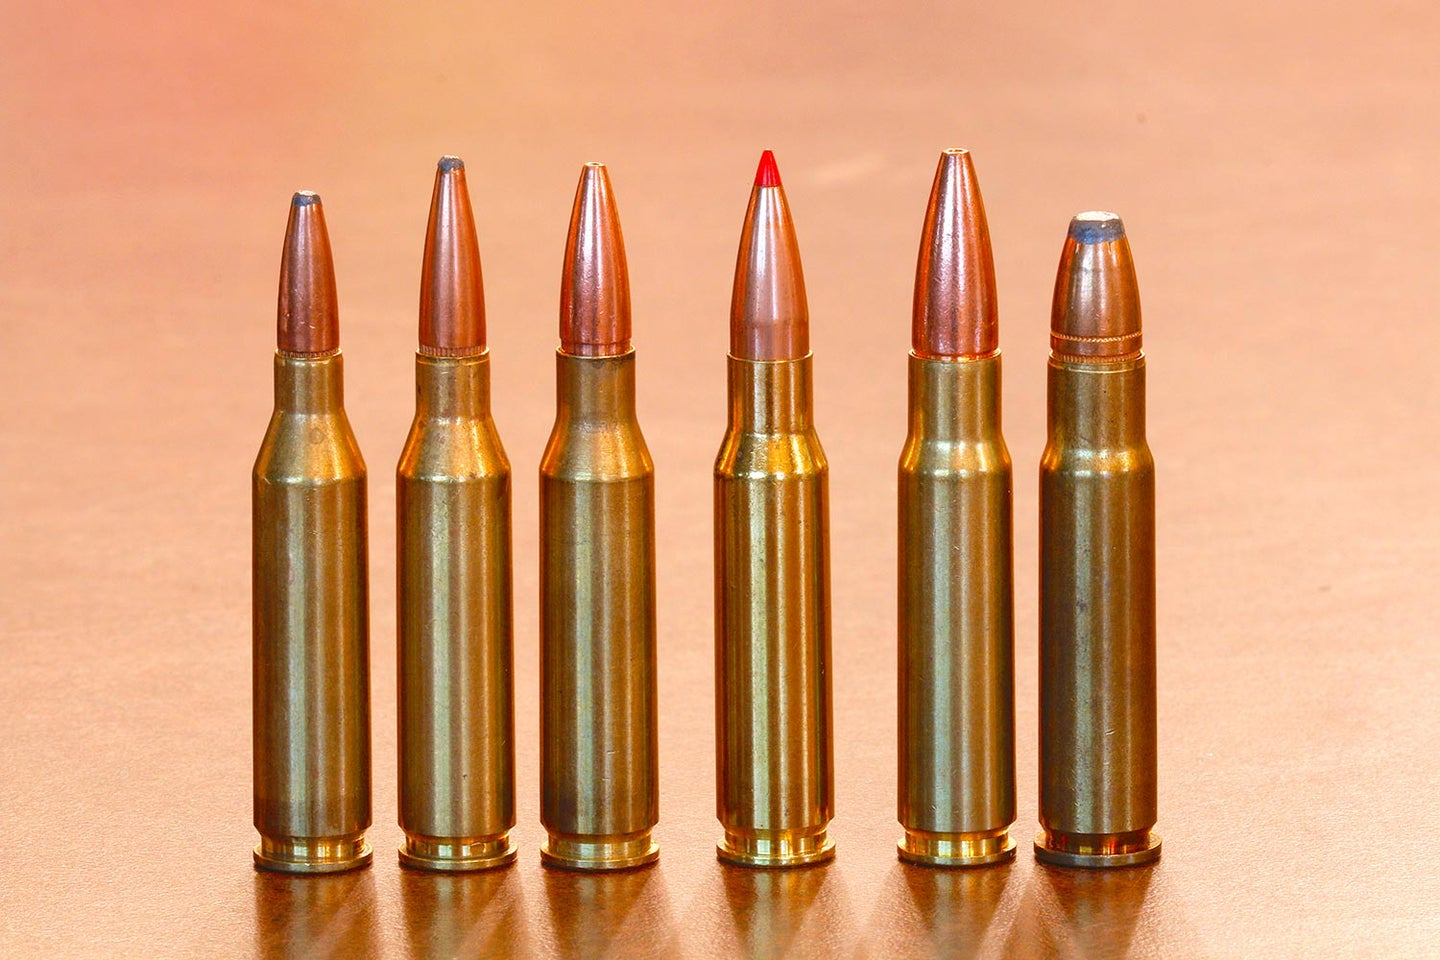 A lineup of rifle cartridges on a table.